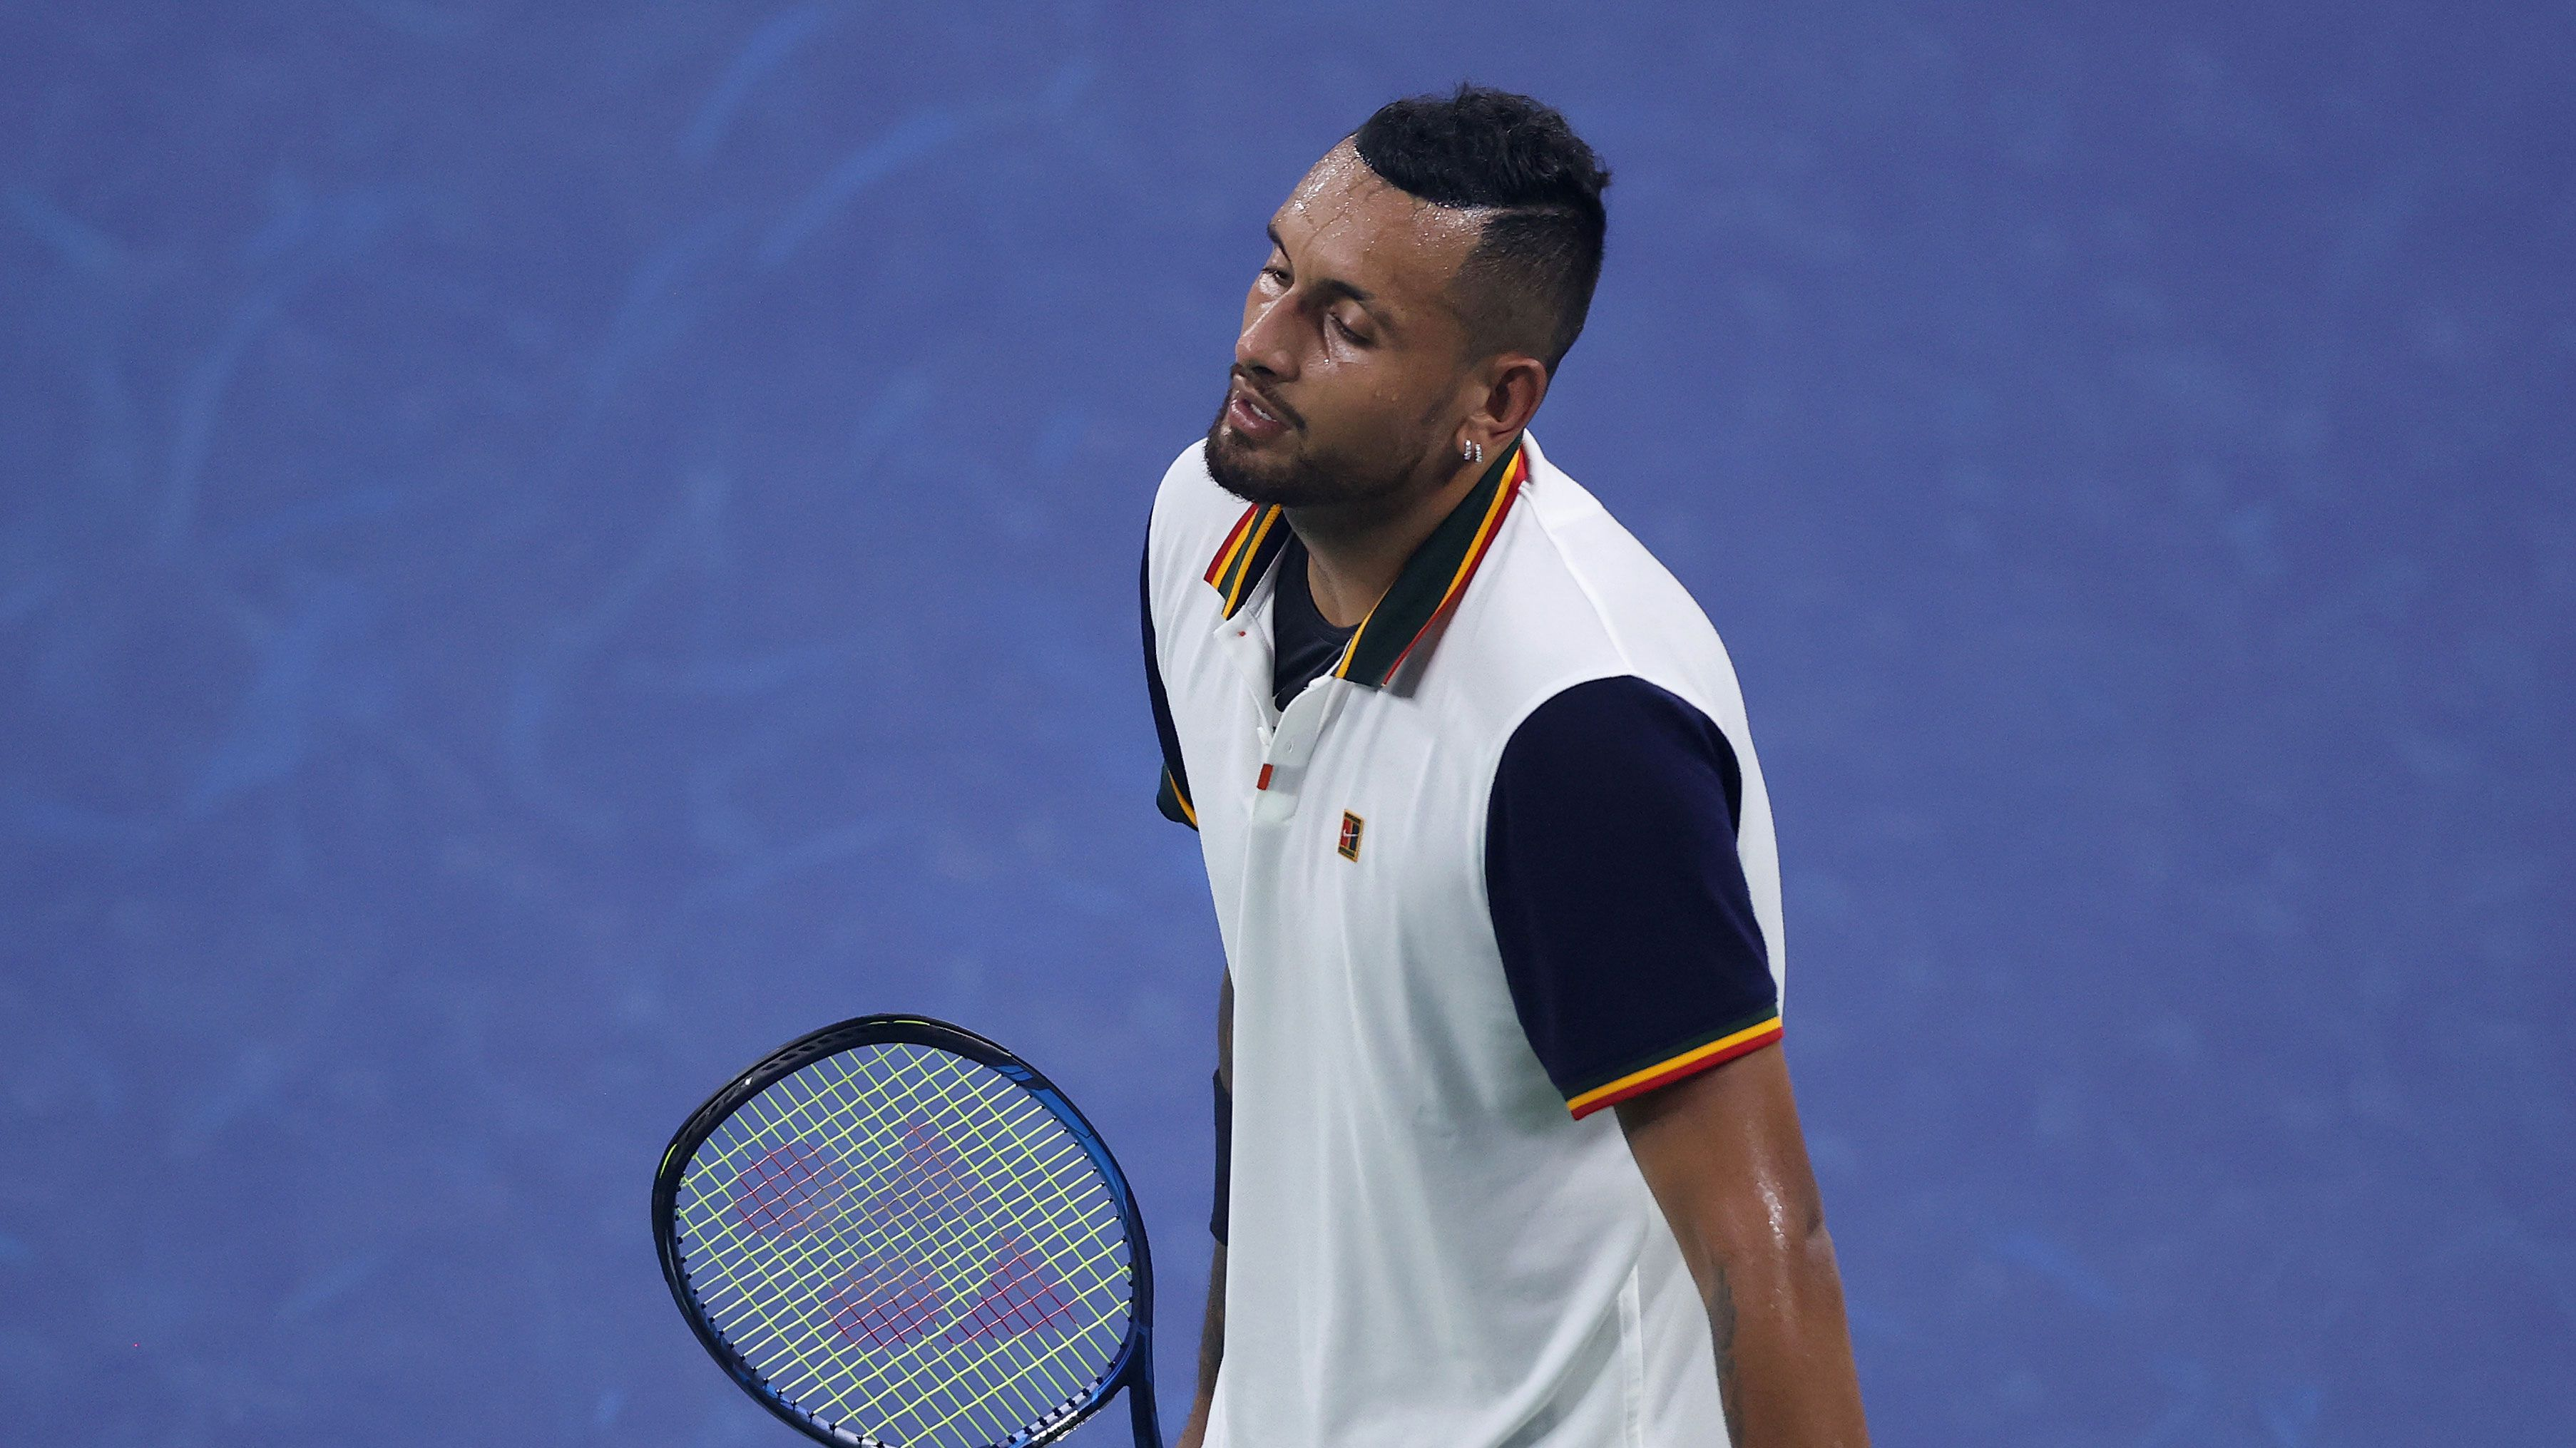 Nick Kyrgios reacts after losing a point against Roberto Bautista Agut.